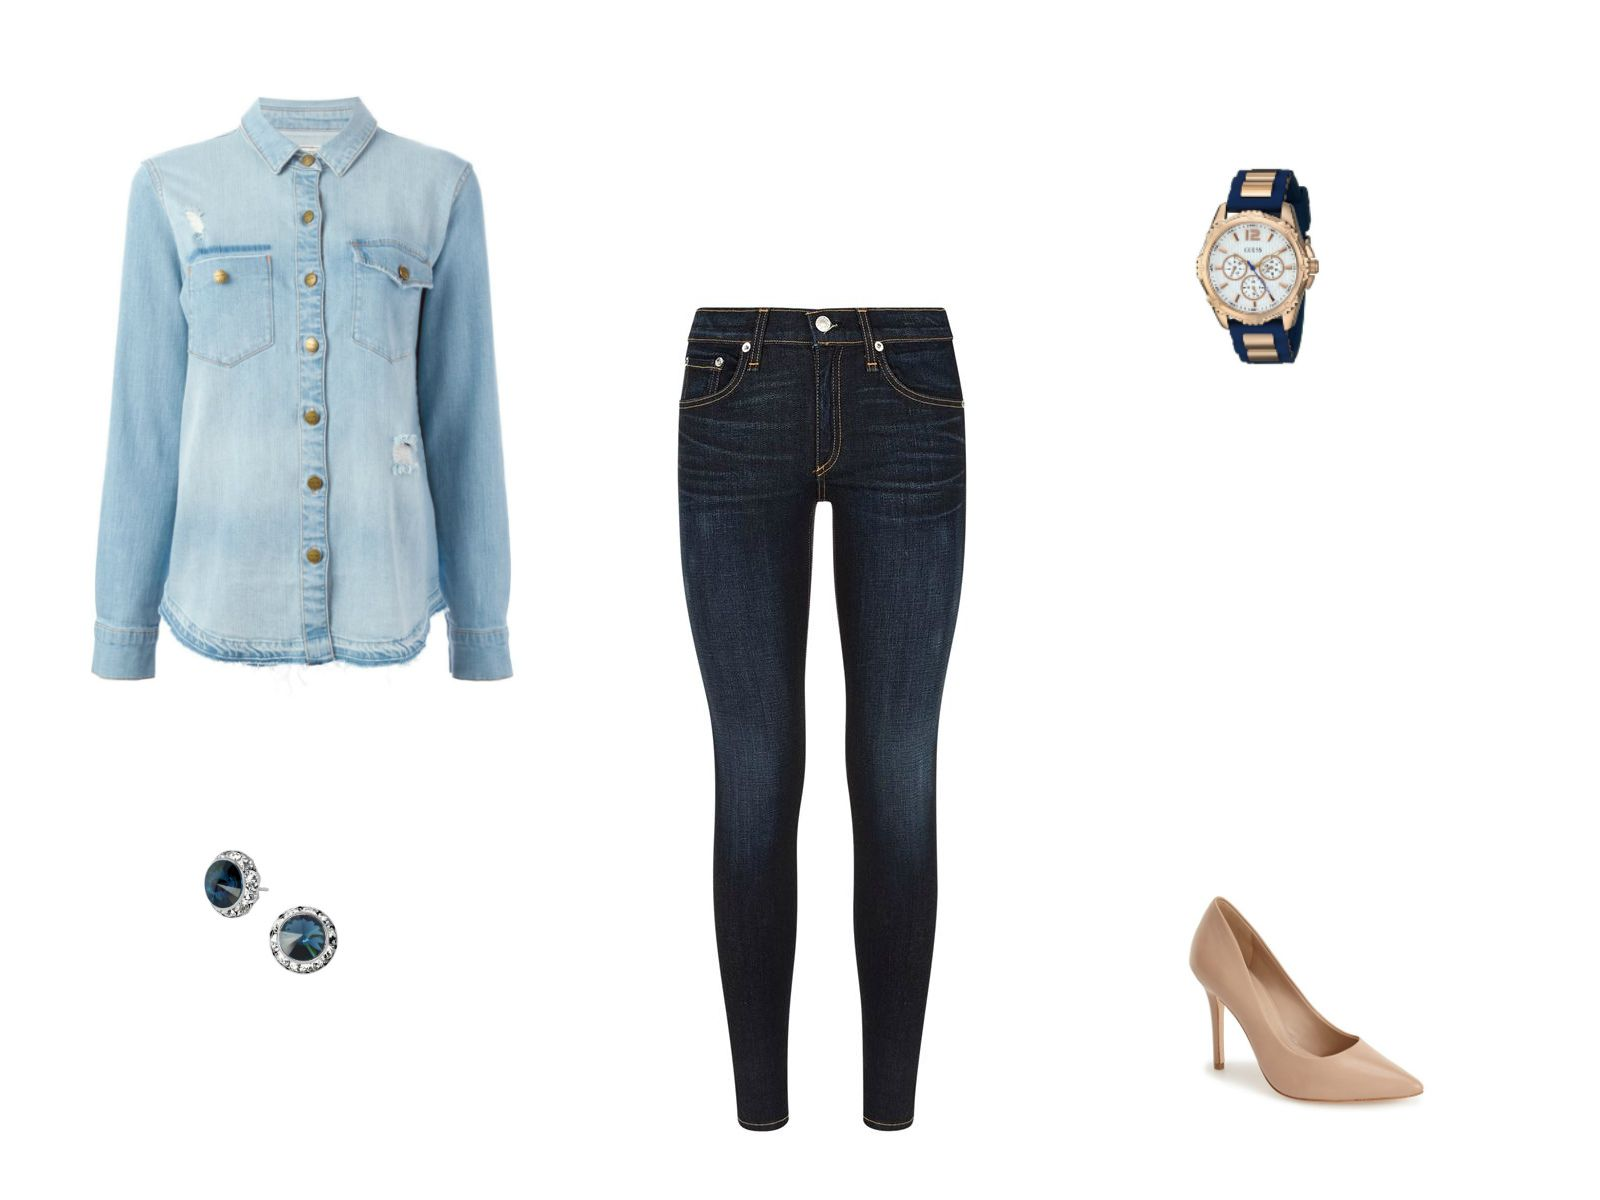 6ac62d4596c The Denim Shirt - How To Wear It 12 Different Ways